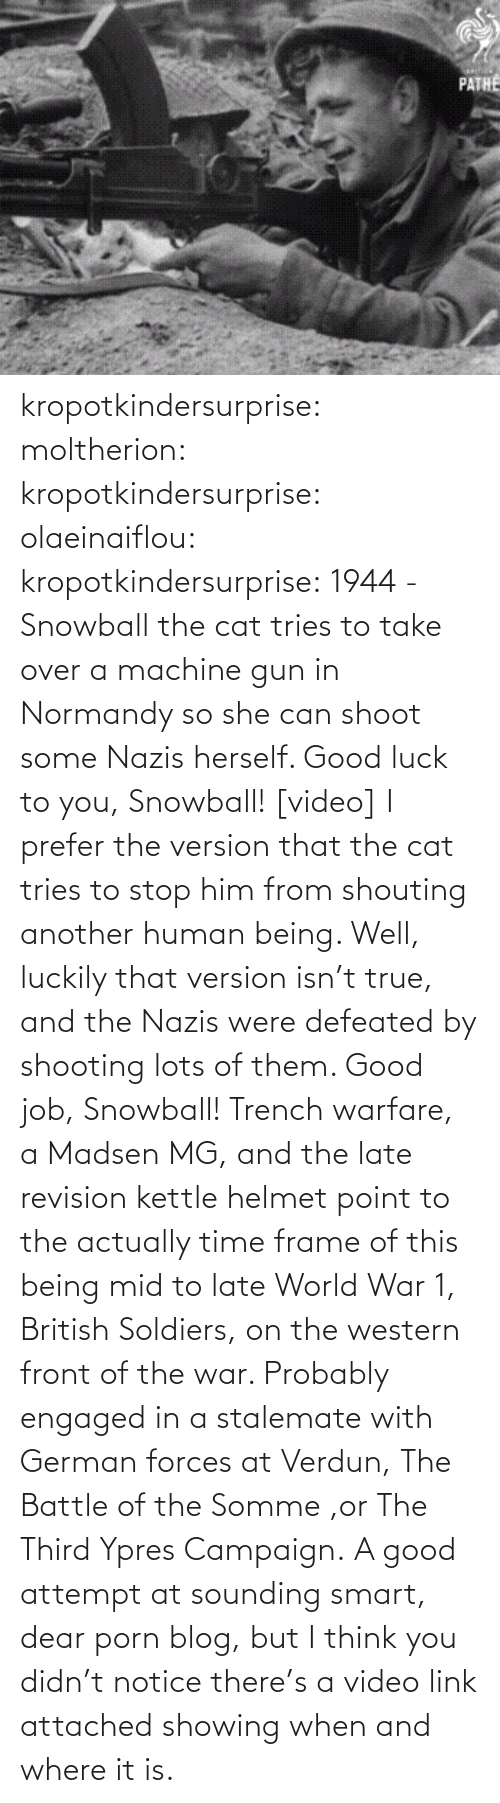 The War: PATHE kropotkindersurprise: moltherion:  kropotkindersurprise:  olaeinaiflou:  kropotkindersurprise: 1944 - Snowball the cat tries to take over a machine gun in Normandy so she can shoot some Nazis herself. Good luck to you, Snowball! [video]  I prefer the version that the cat tries to stop him from shouting another human being.   Well, luckily that version isn't true, and the Nazis were defeated by shooting lots of them. Good job, Snowball!   Trench warfare, a Madsen MG, and the late revision kettle helmet point to the actually time frame of this being mid to late World War 1, British Soldiers, on the western front of the war. Probably engaged in a stalemate with German forces at Verdun, The Battle of the Somme ,or The Third Ypres Campaign.  A good attempt at sounding smart, dear porn blog, but I think you didn't notice there's a video link attached showing when and where it is.